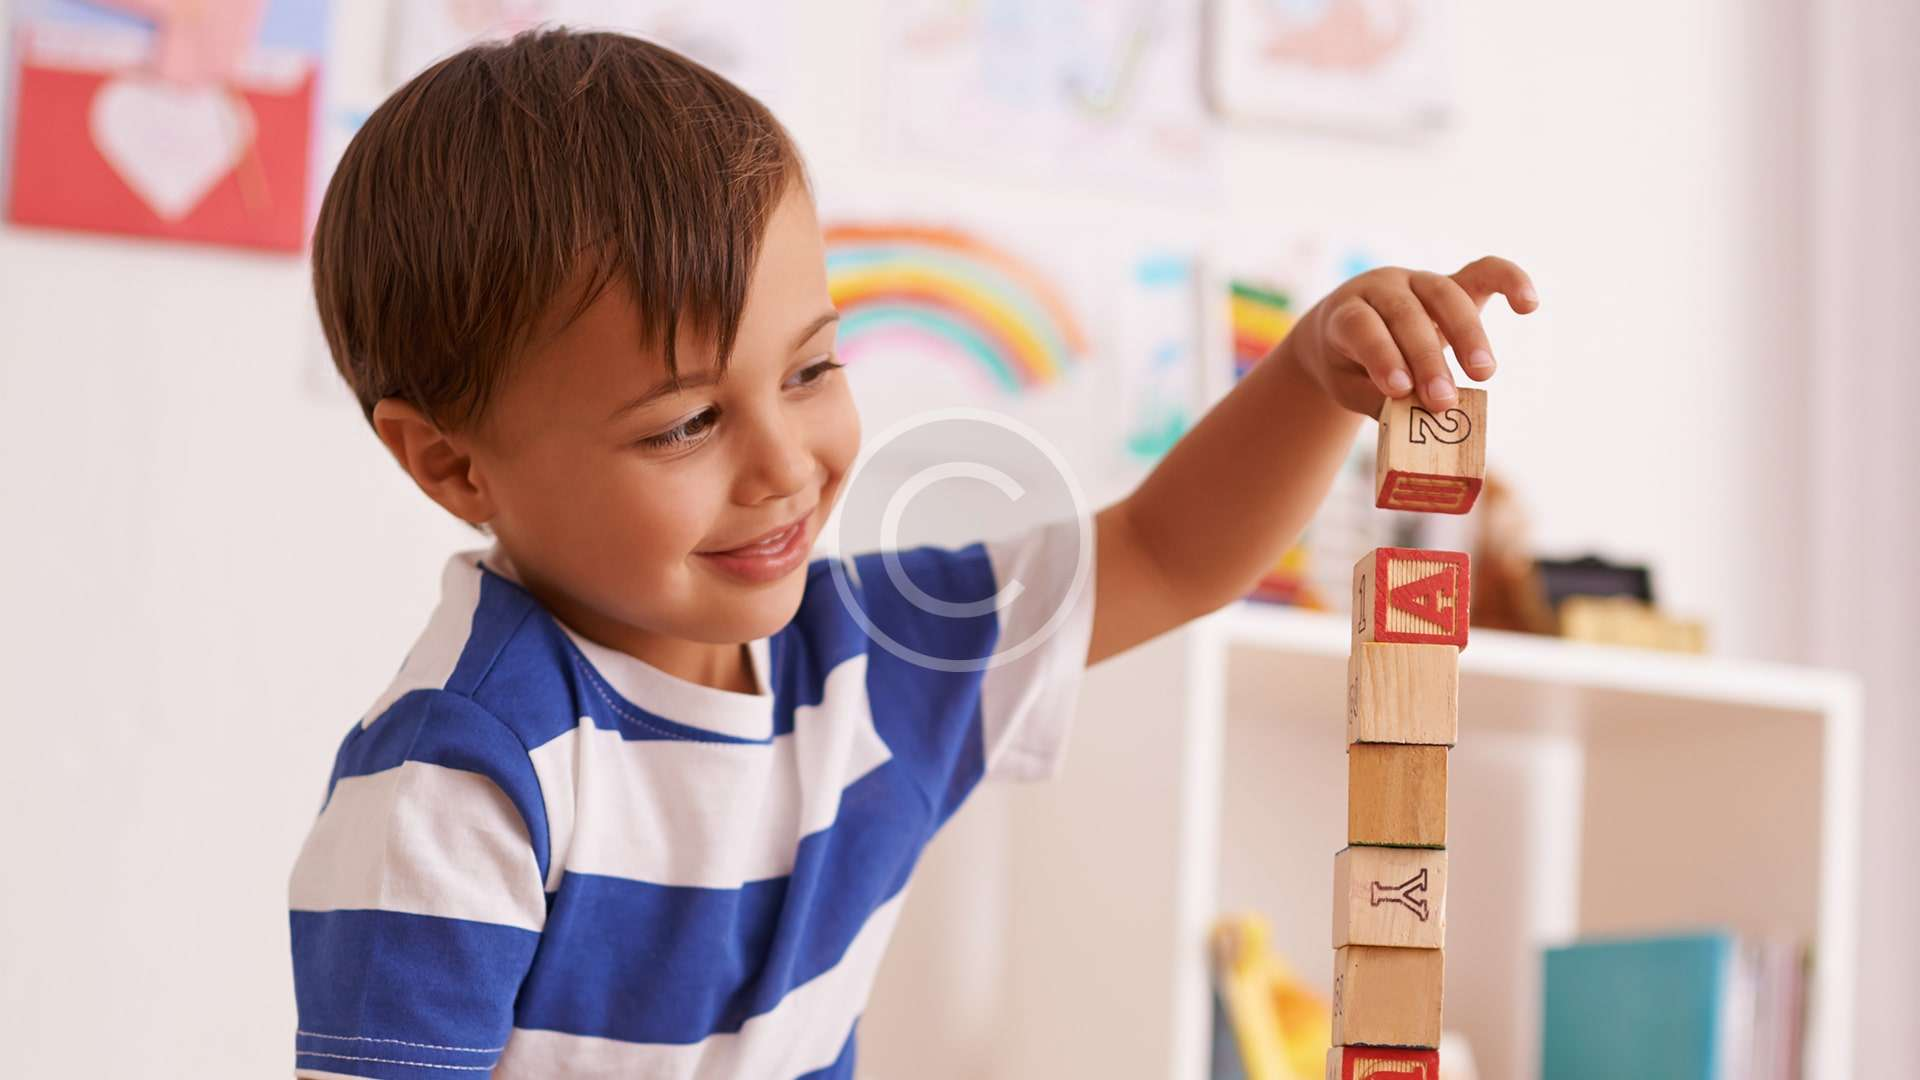 Motivation and Brain Training Games for Kids